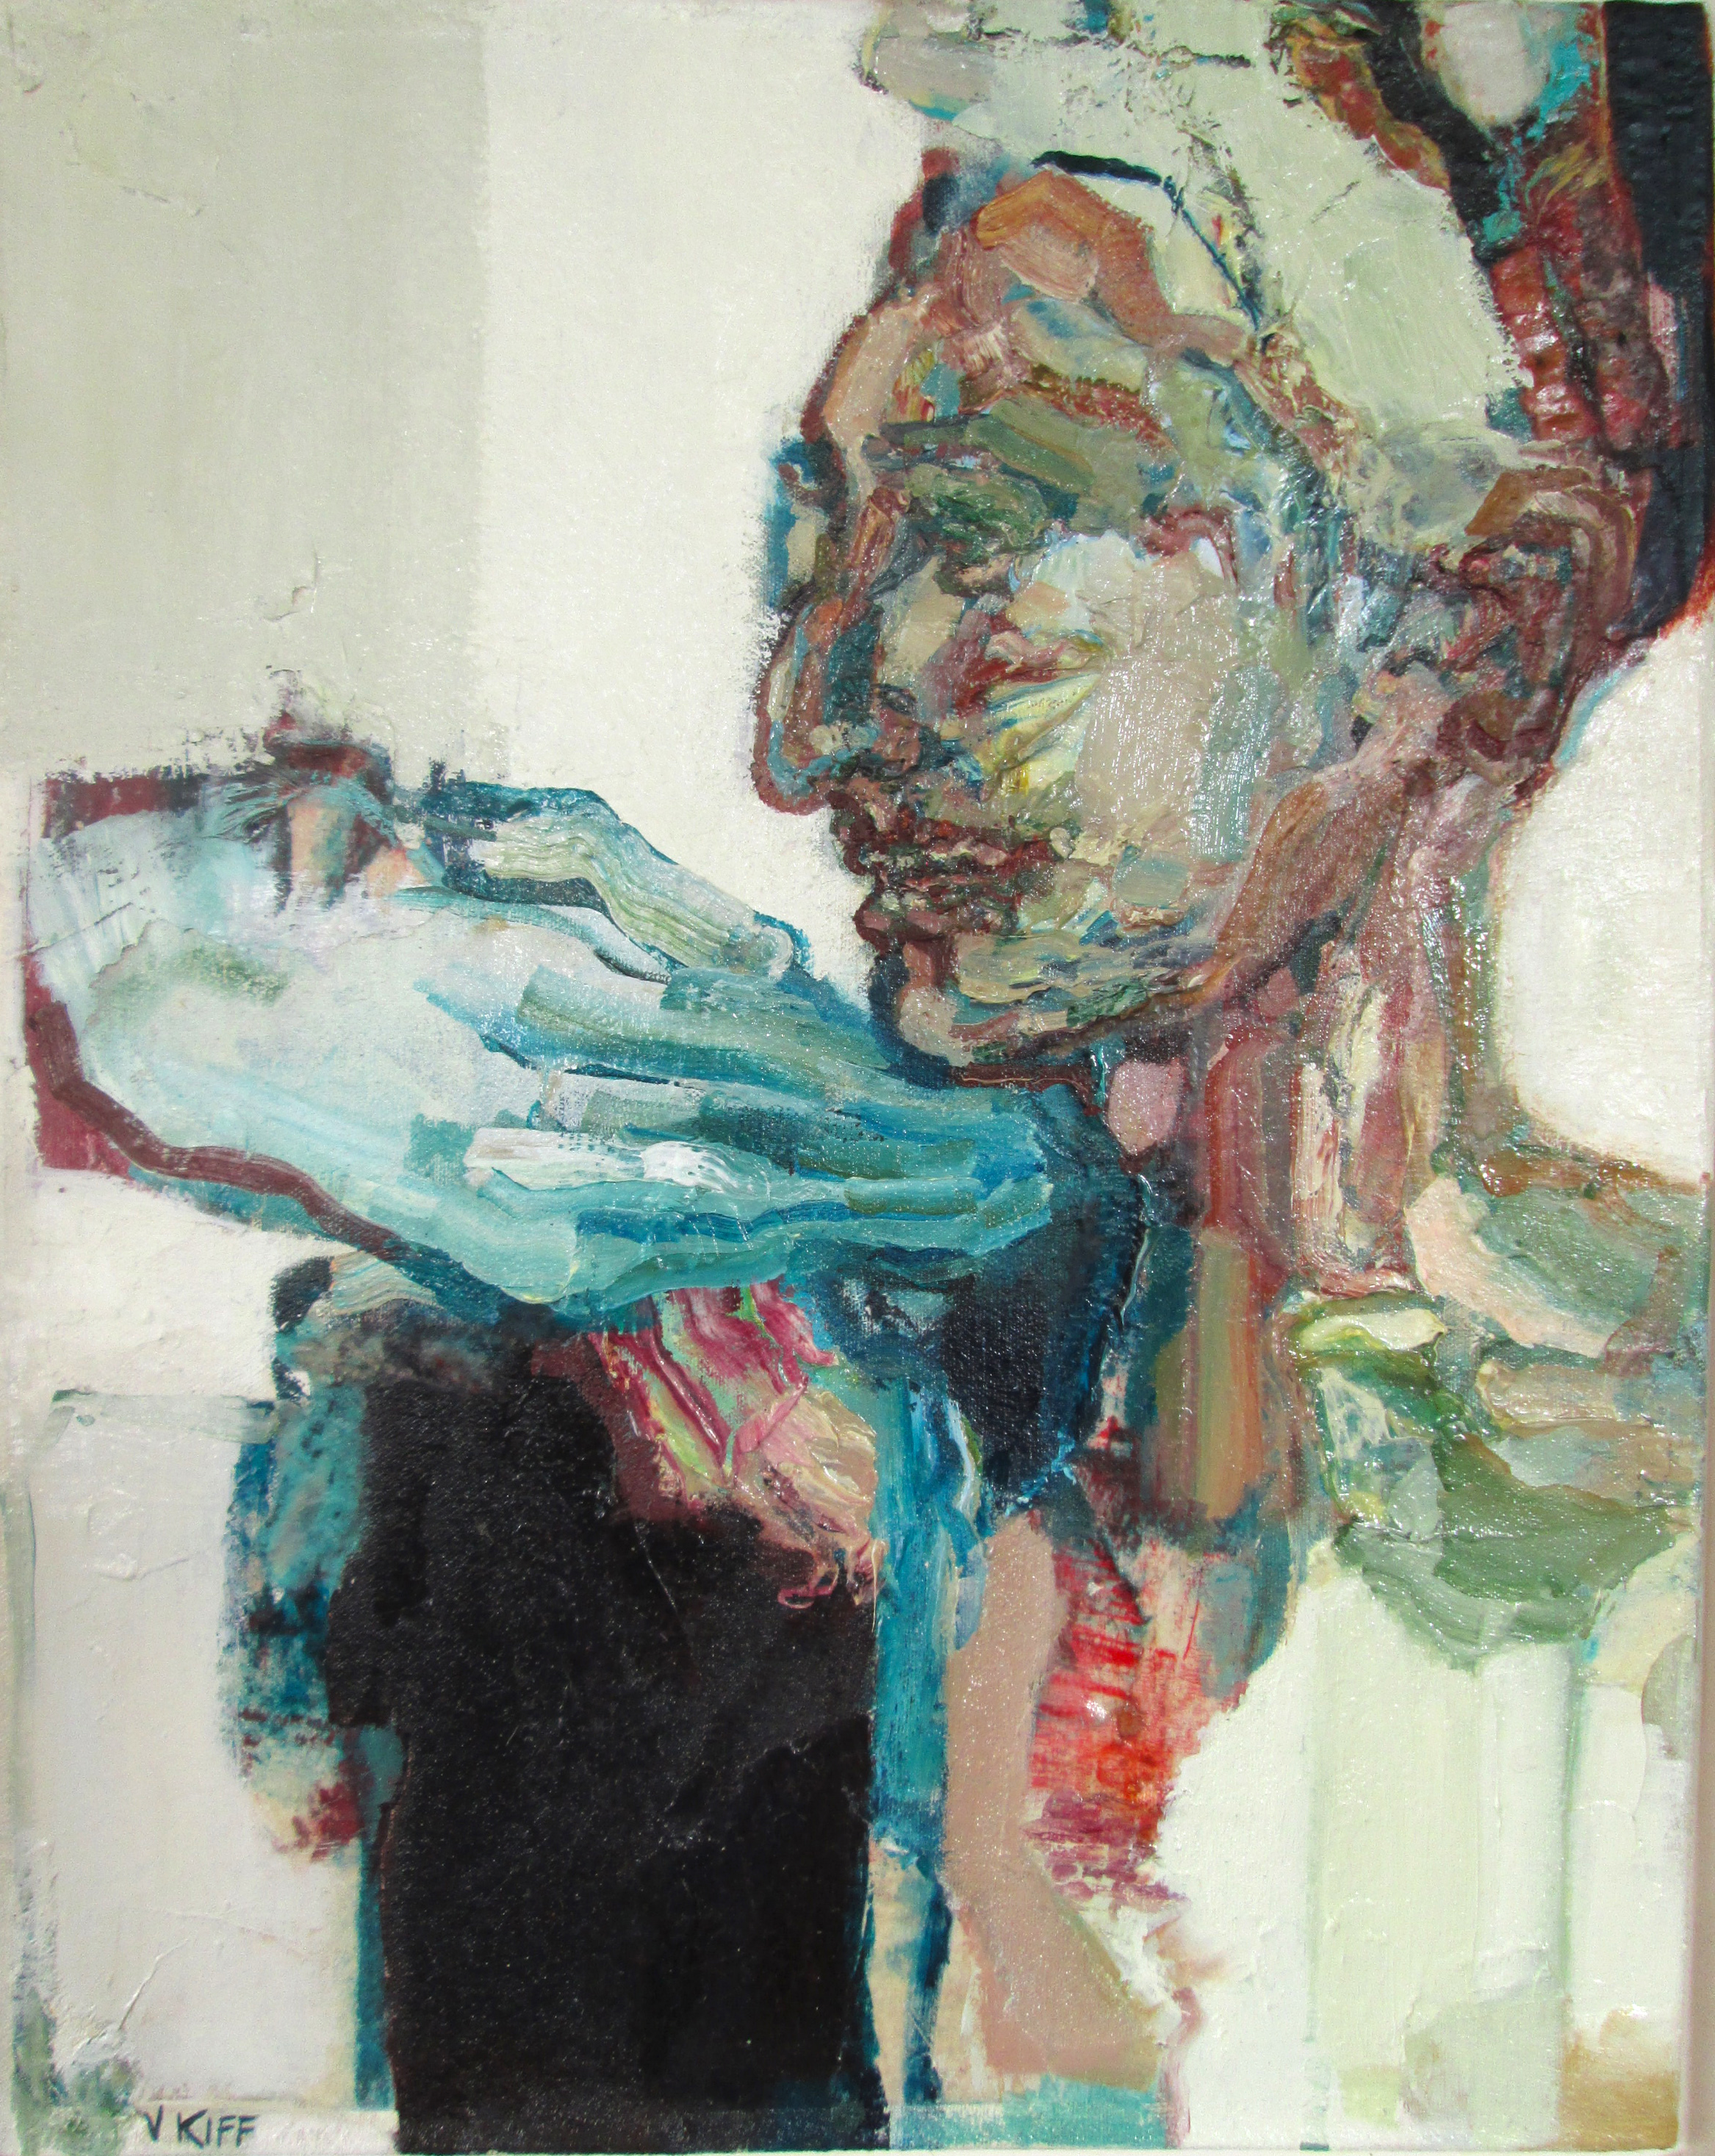 Title: Exquisite Bell-Glass  Size: 66 x 56 cm  Medium: Oil on canvas  Price: £1950